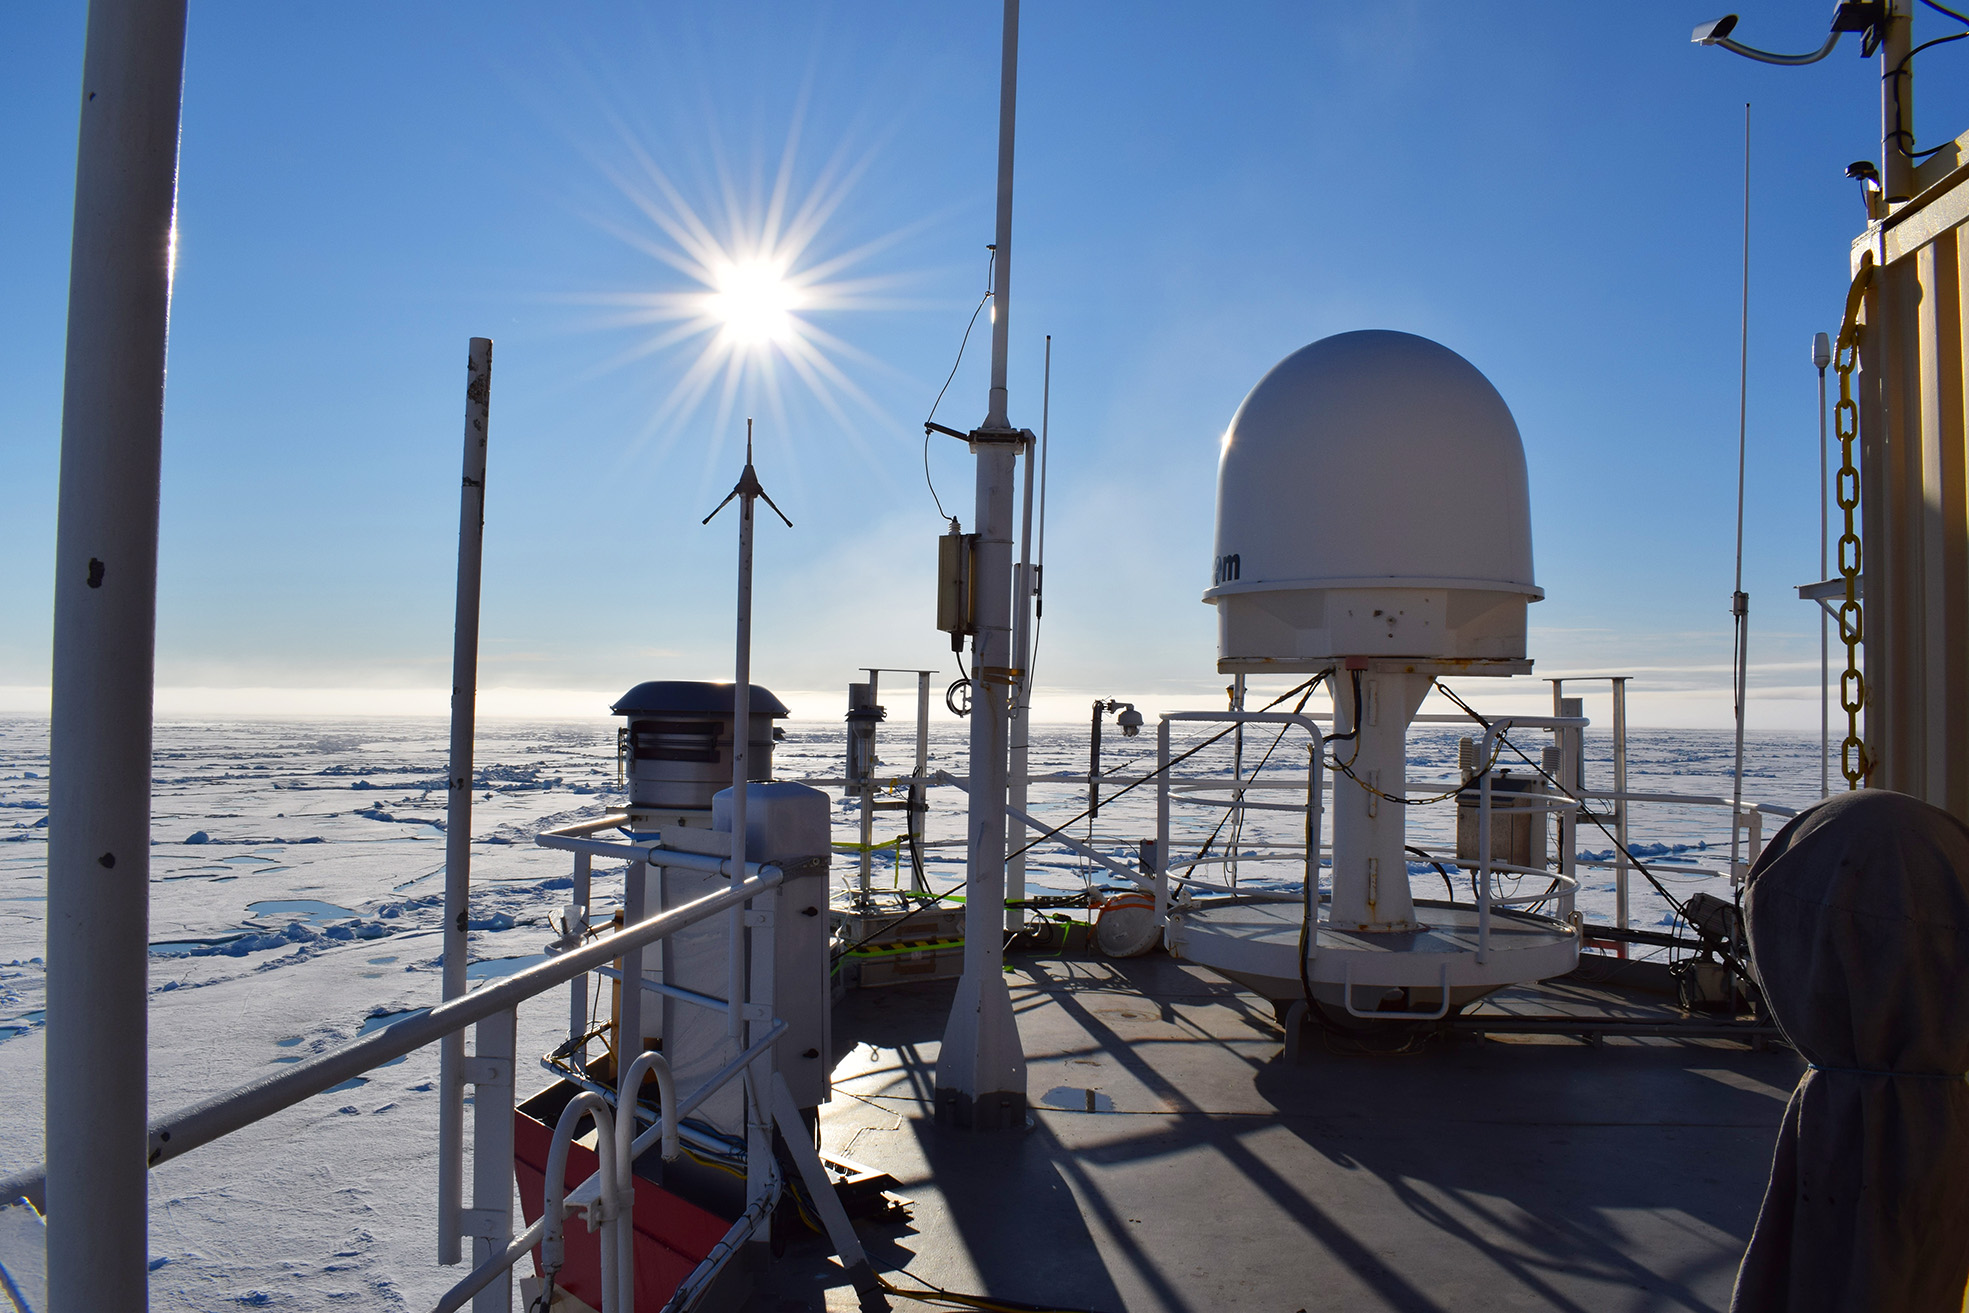 The 7th Deck of the Oden Icebreaker where aerosol sampling instruments were deployed. Photo: Grace Portera